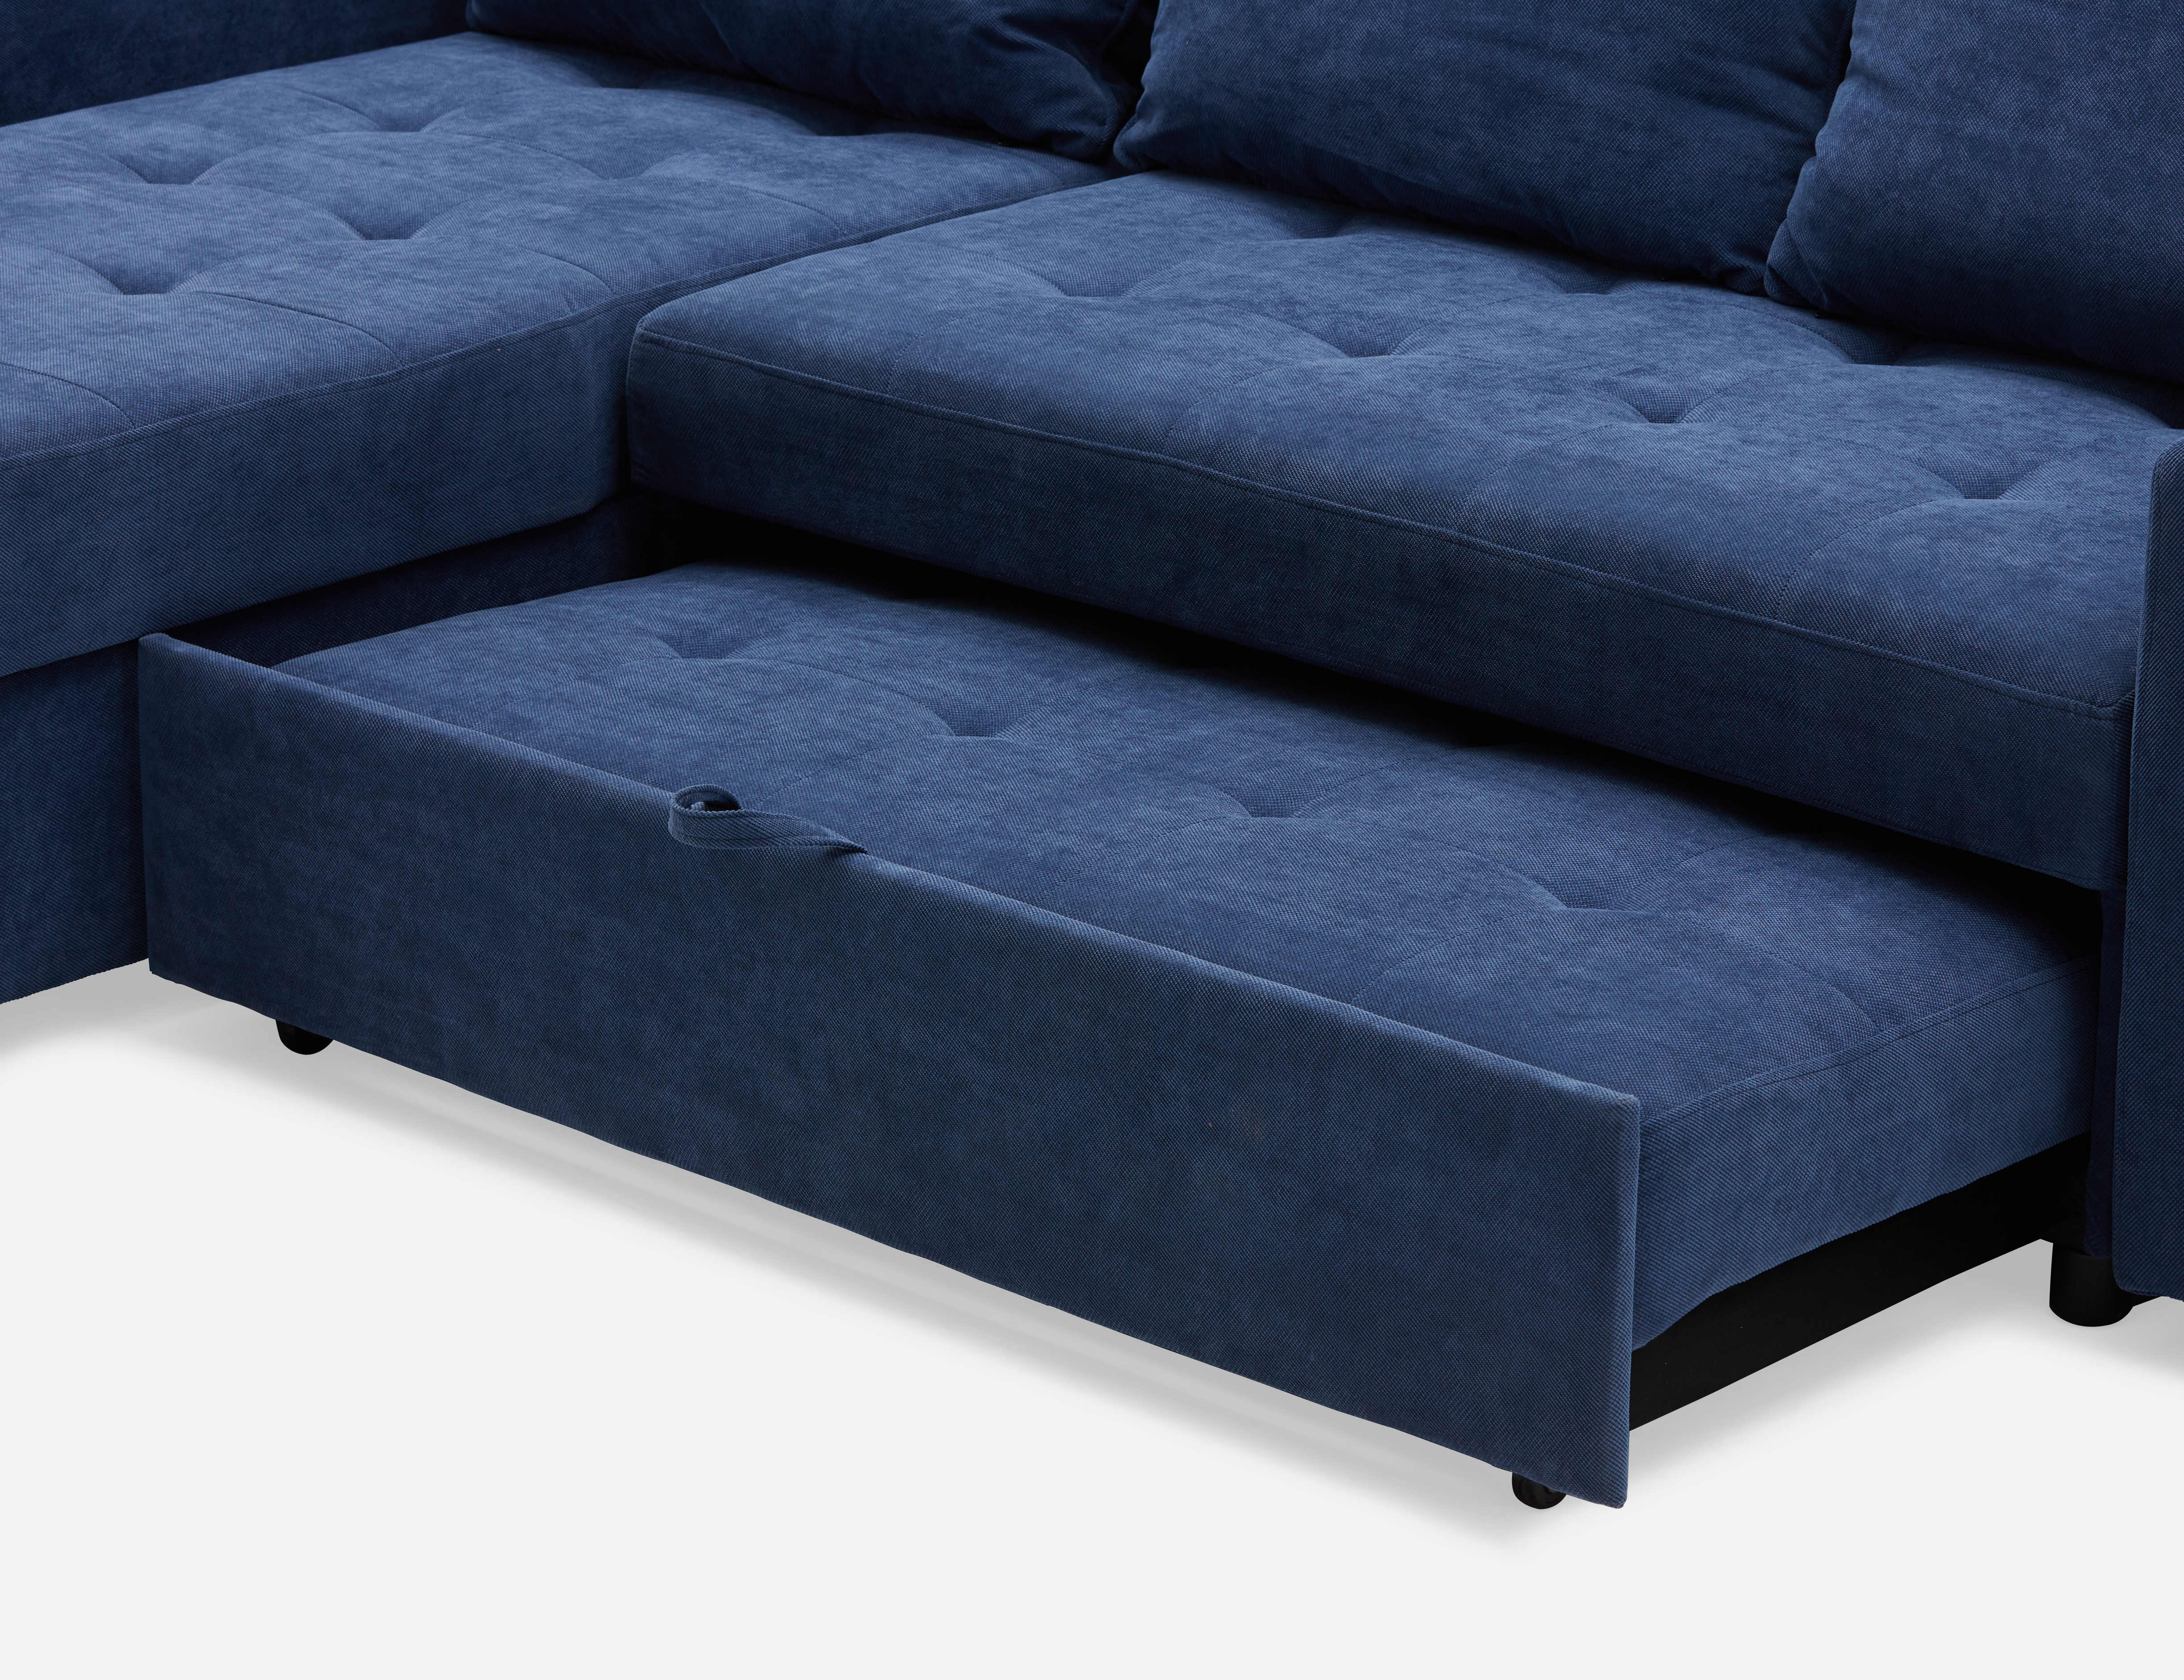 Peachy Dark Blue Interchangeable Sectional Sofa Bed Structube Unemploymentrelief Wooden Chair Designs For Living Room Unemploymentrelieforg